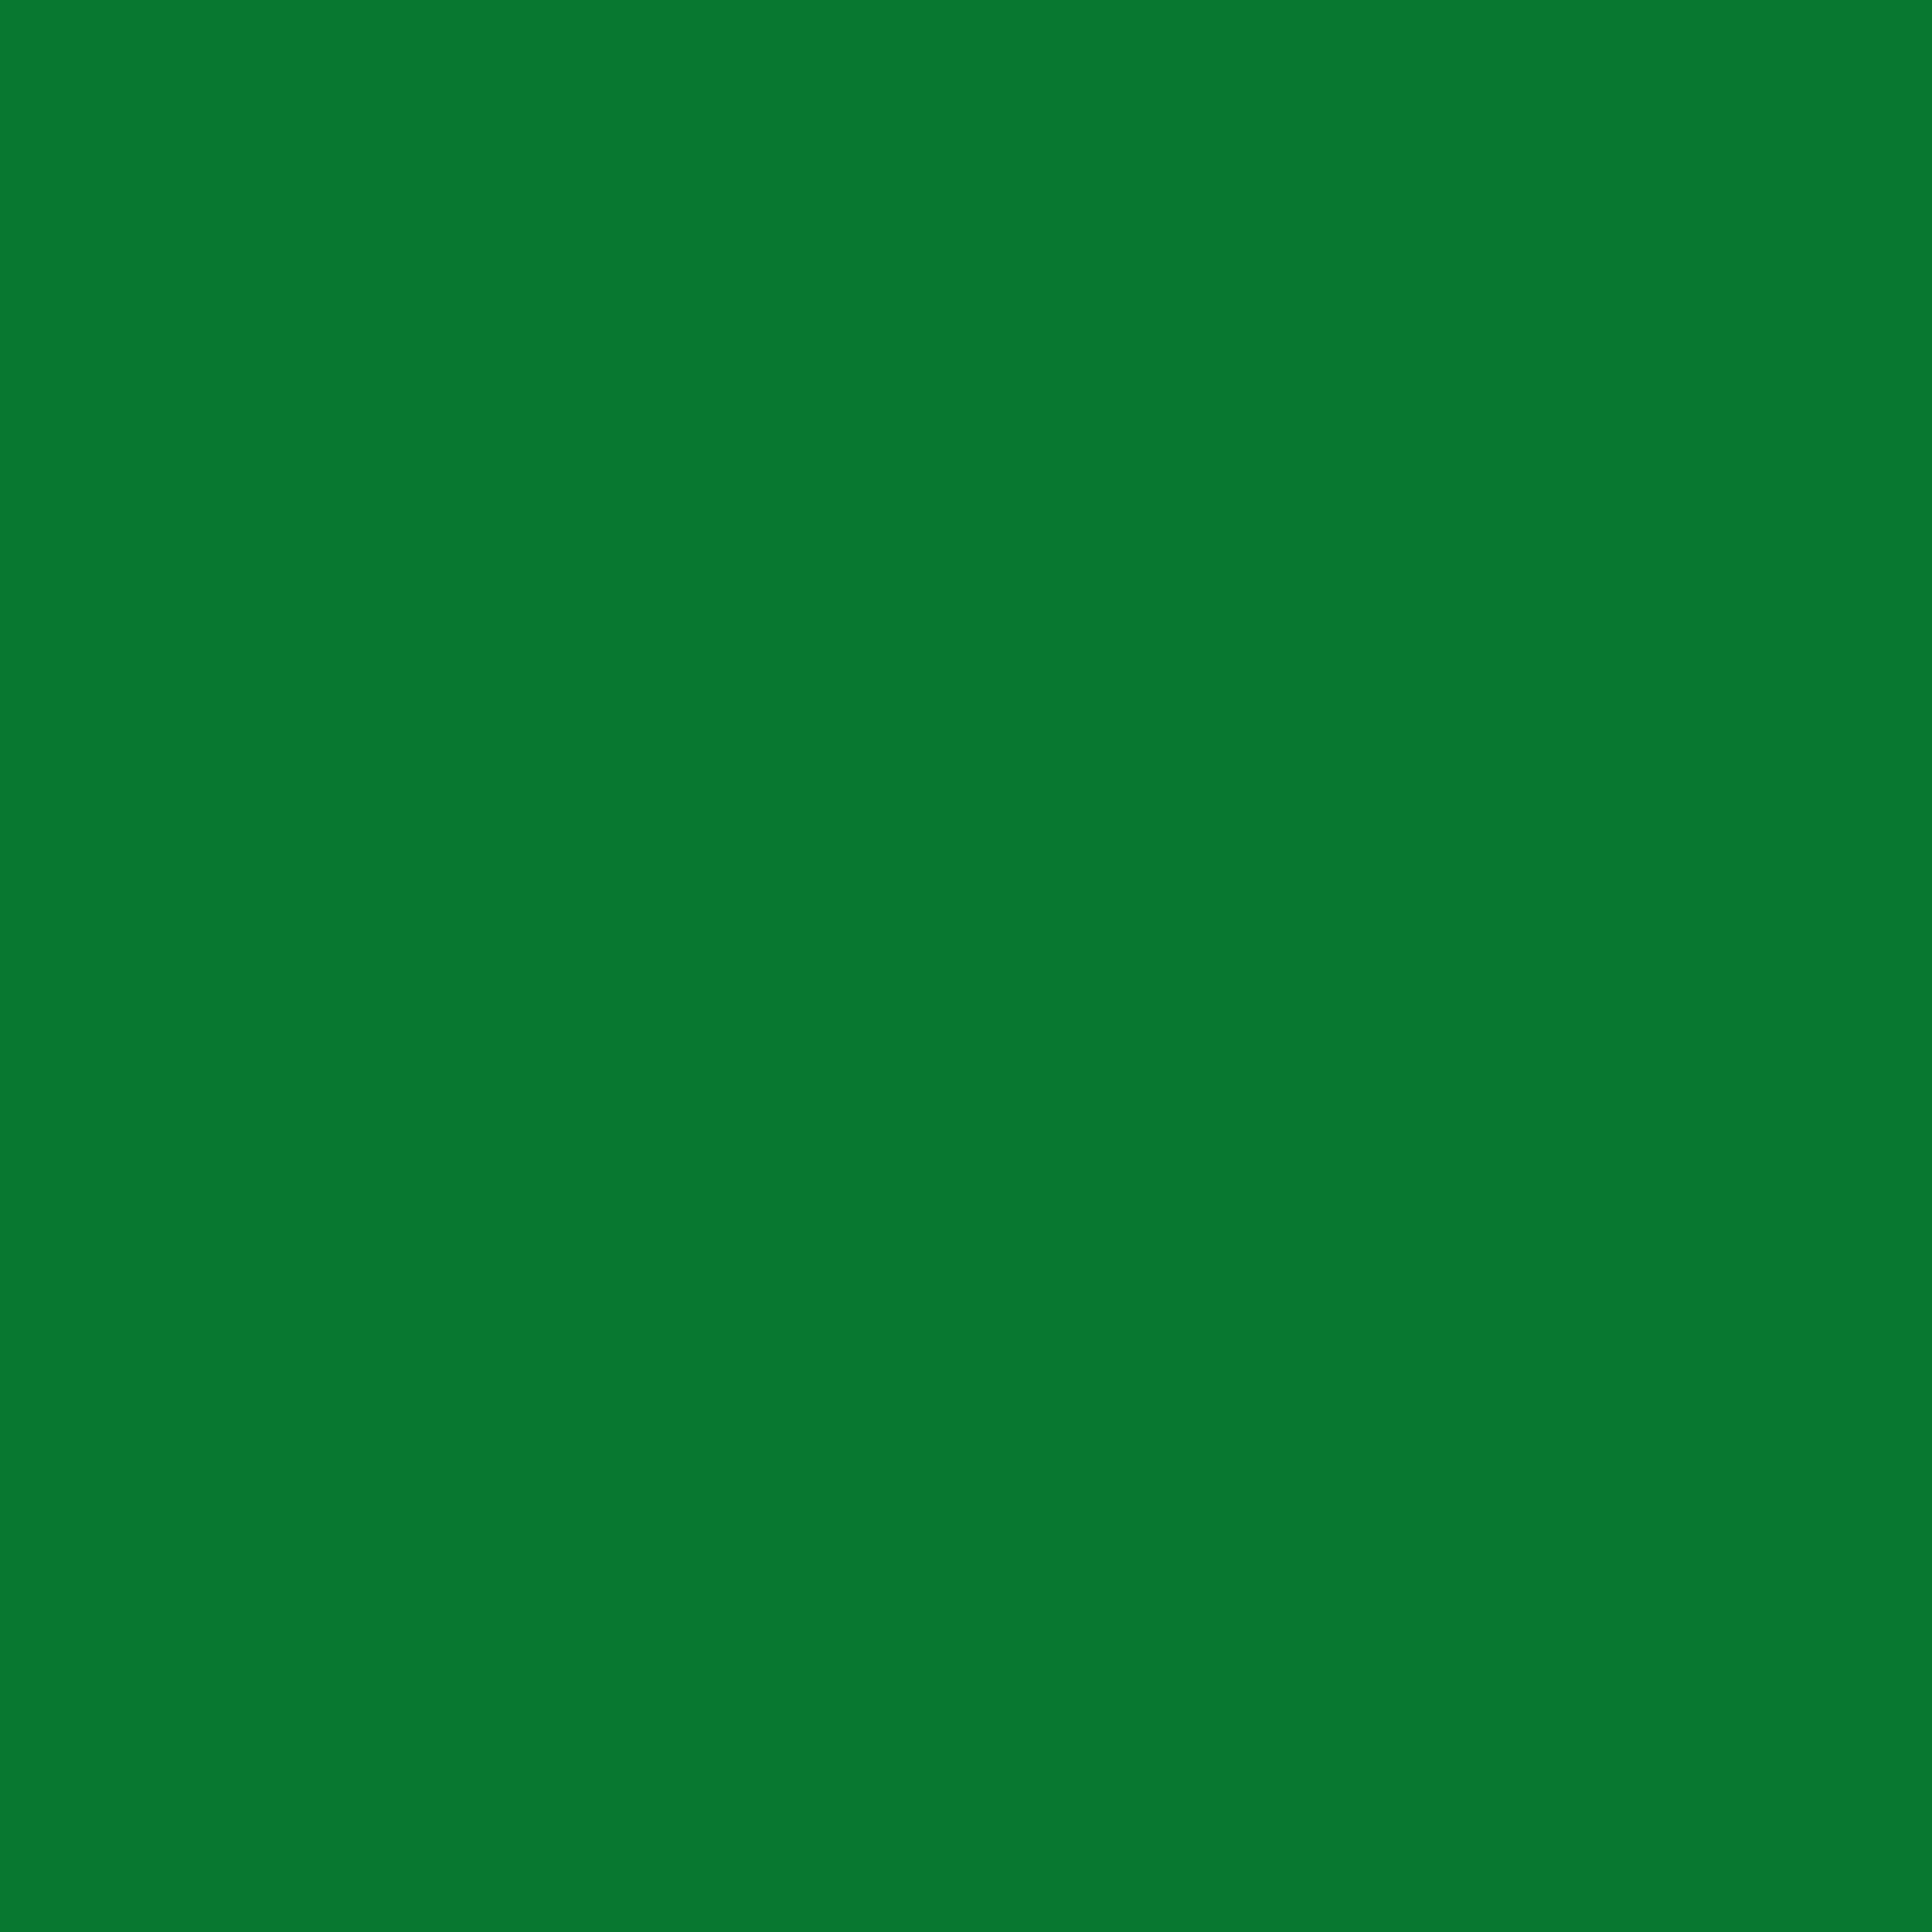 3600x3600 La Salle Green Solid Color Background